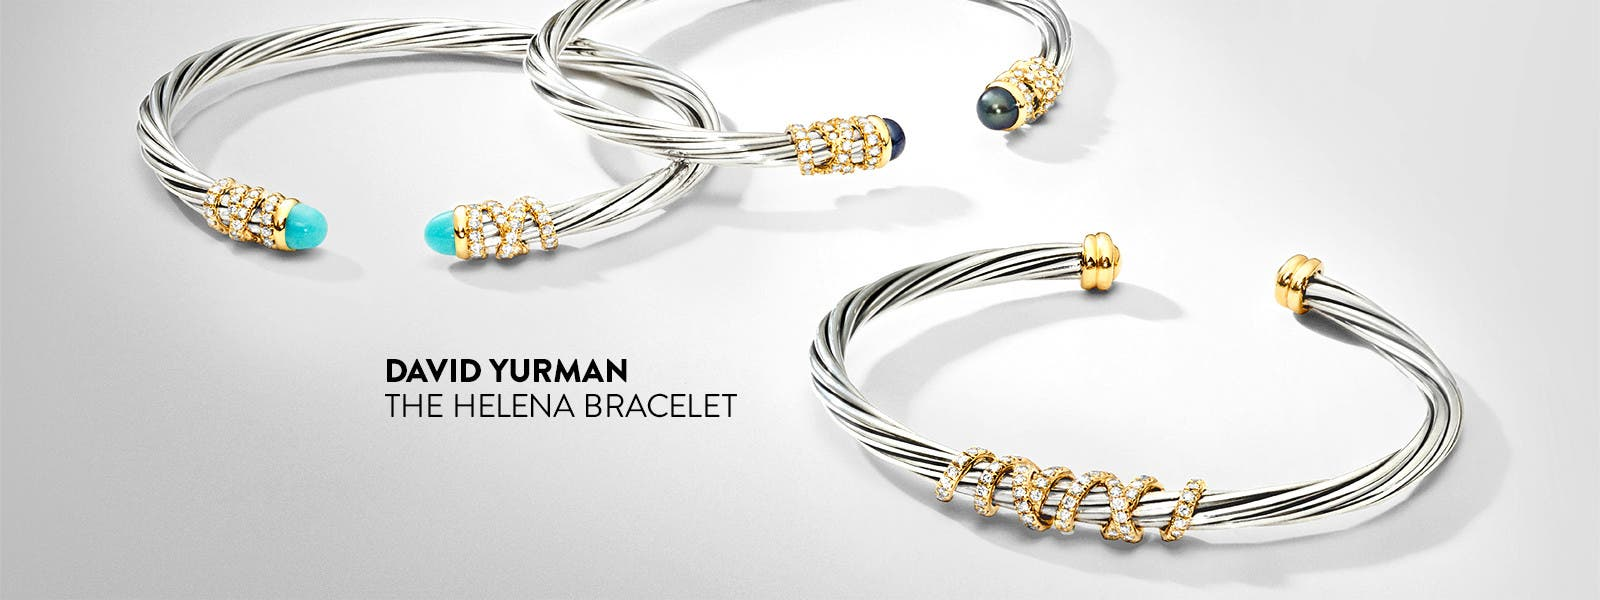 David Yurman: the Helena bracelet.